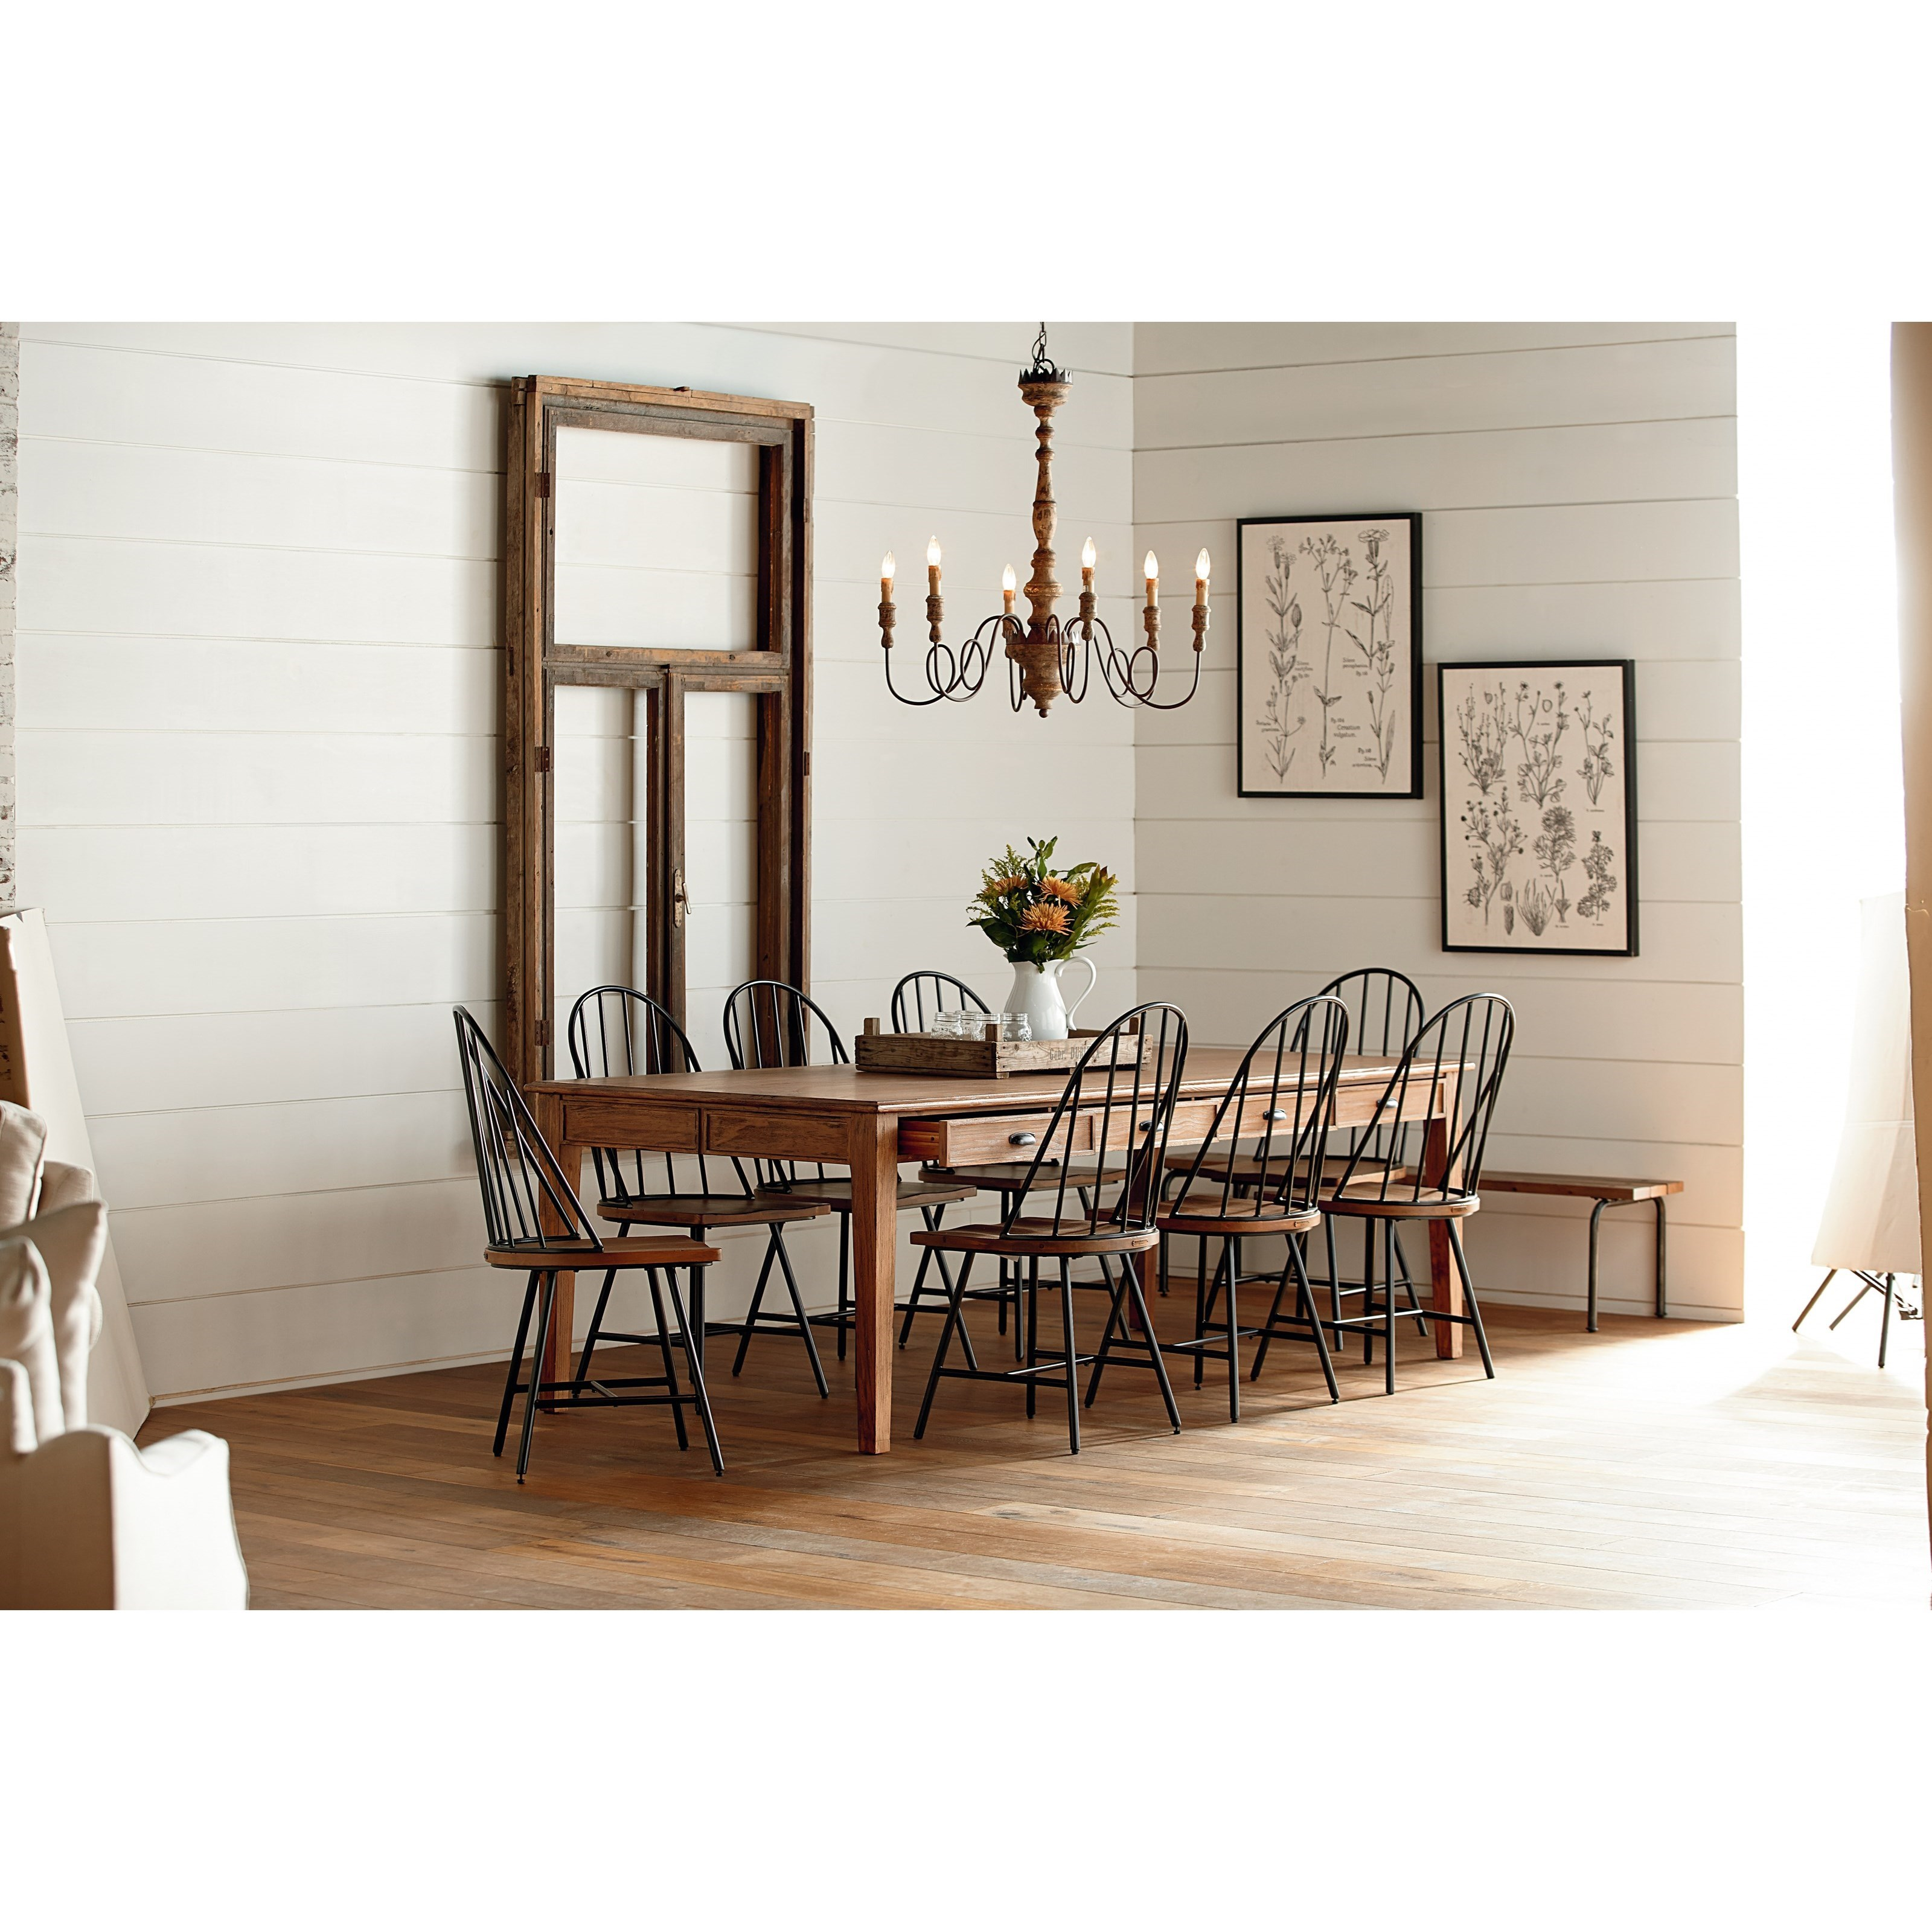 Magnolia Home By Joanna Gaines Farmhouse 10 Piece Dining Set With